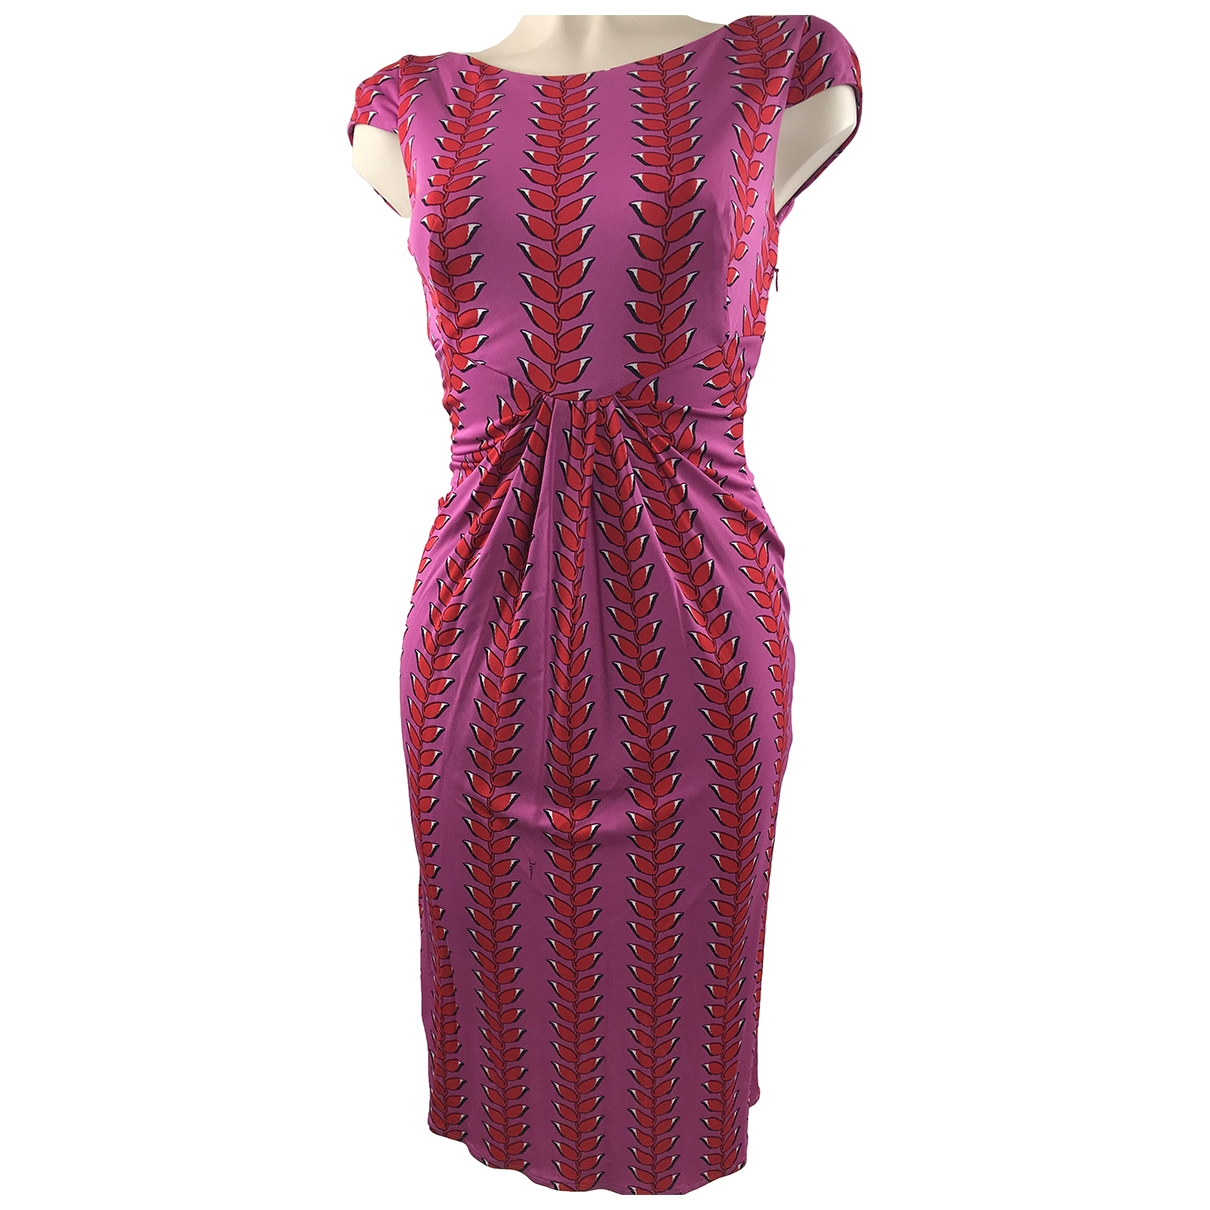 Issa - Robe   pour femme - rose